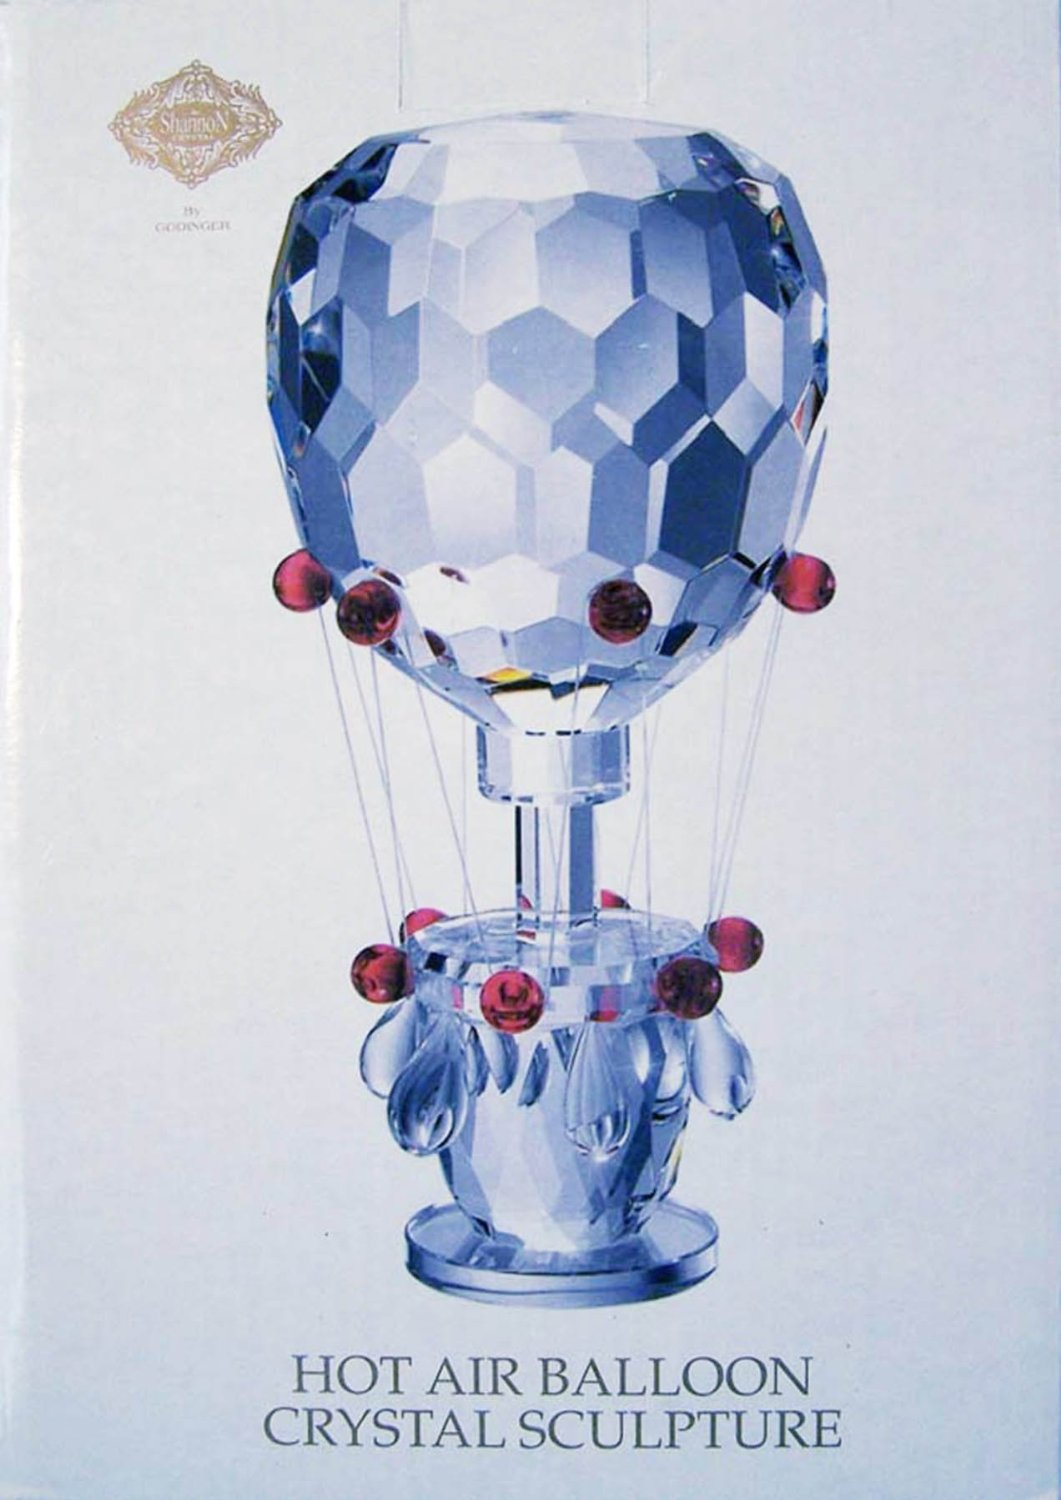 Collectable Crystal Hot Air Balloon by Godinger